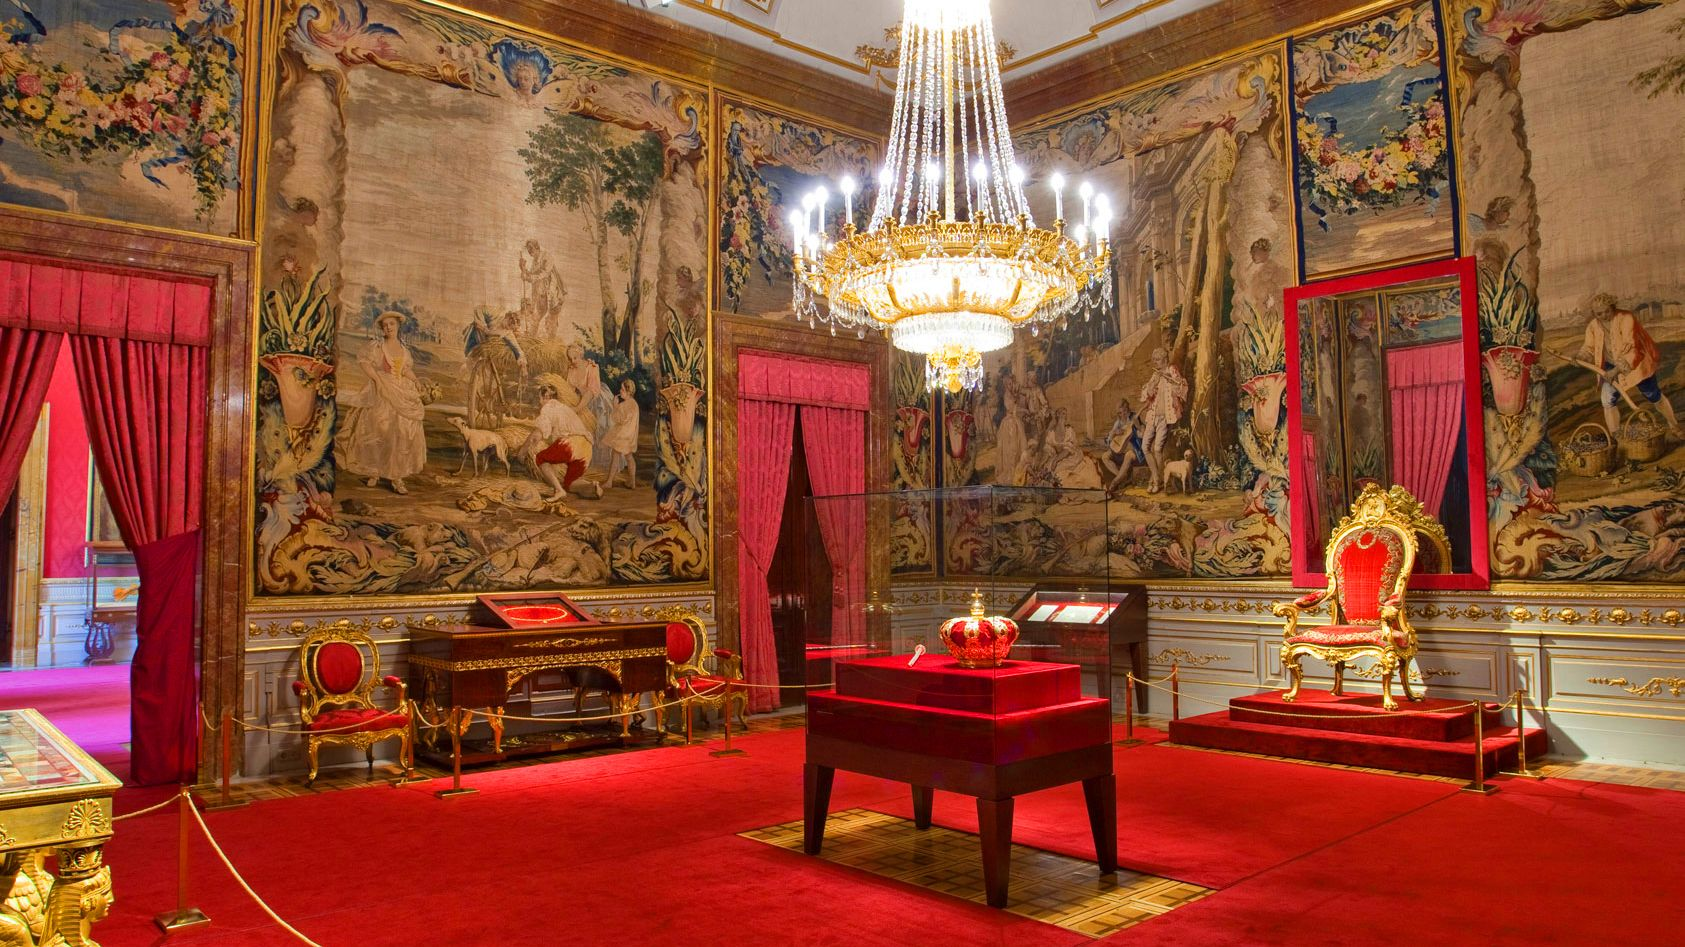 Skip-the-Line Entry for Guided Royal Palace Tour